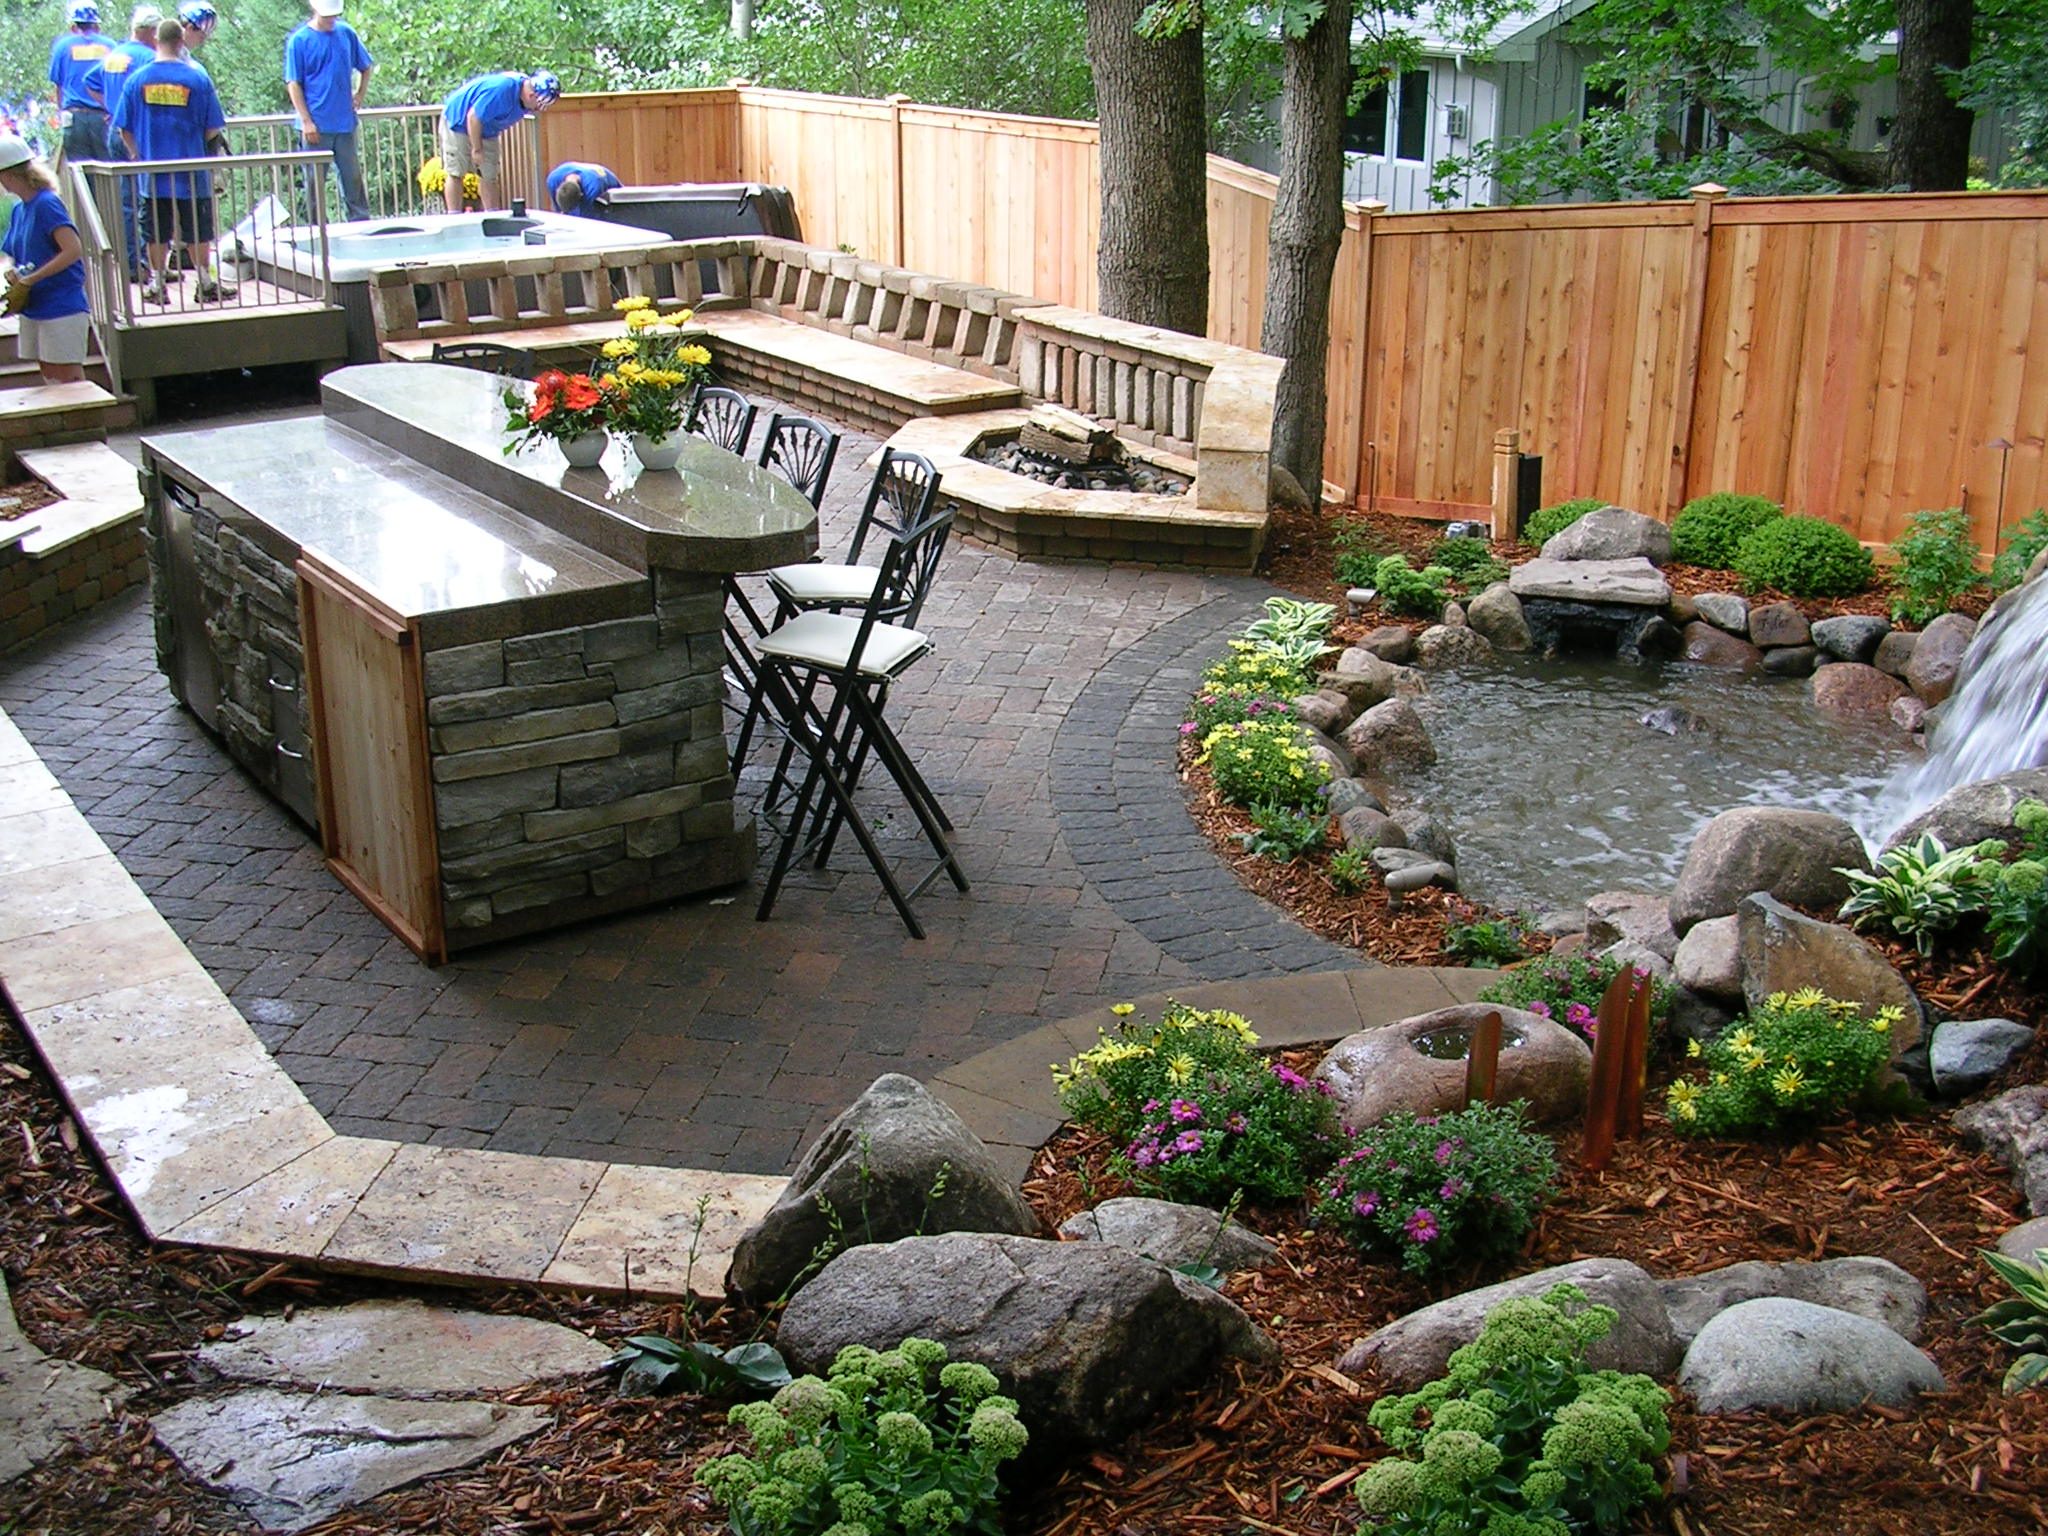 Landscape design ideas patio driveway installation for Home garden landscape designs